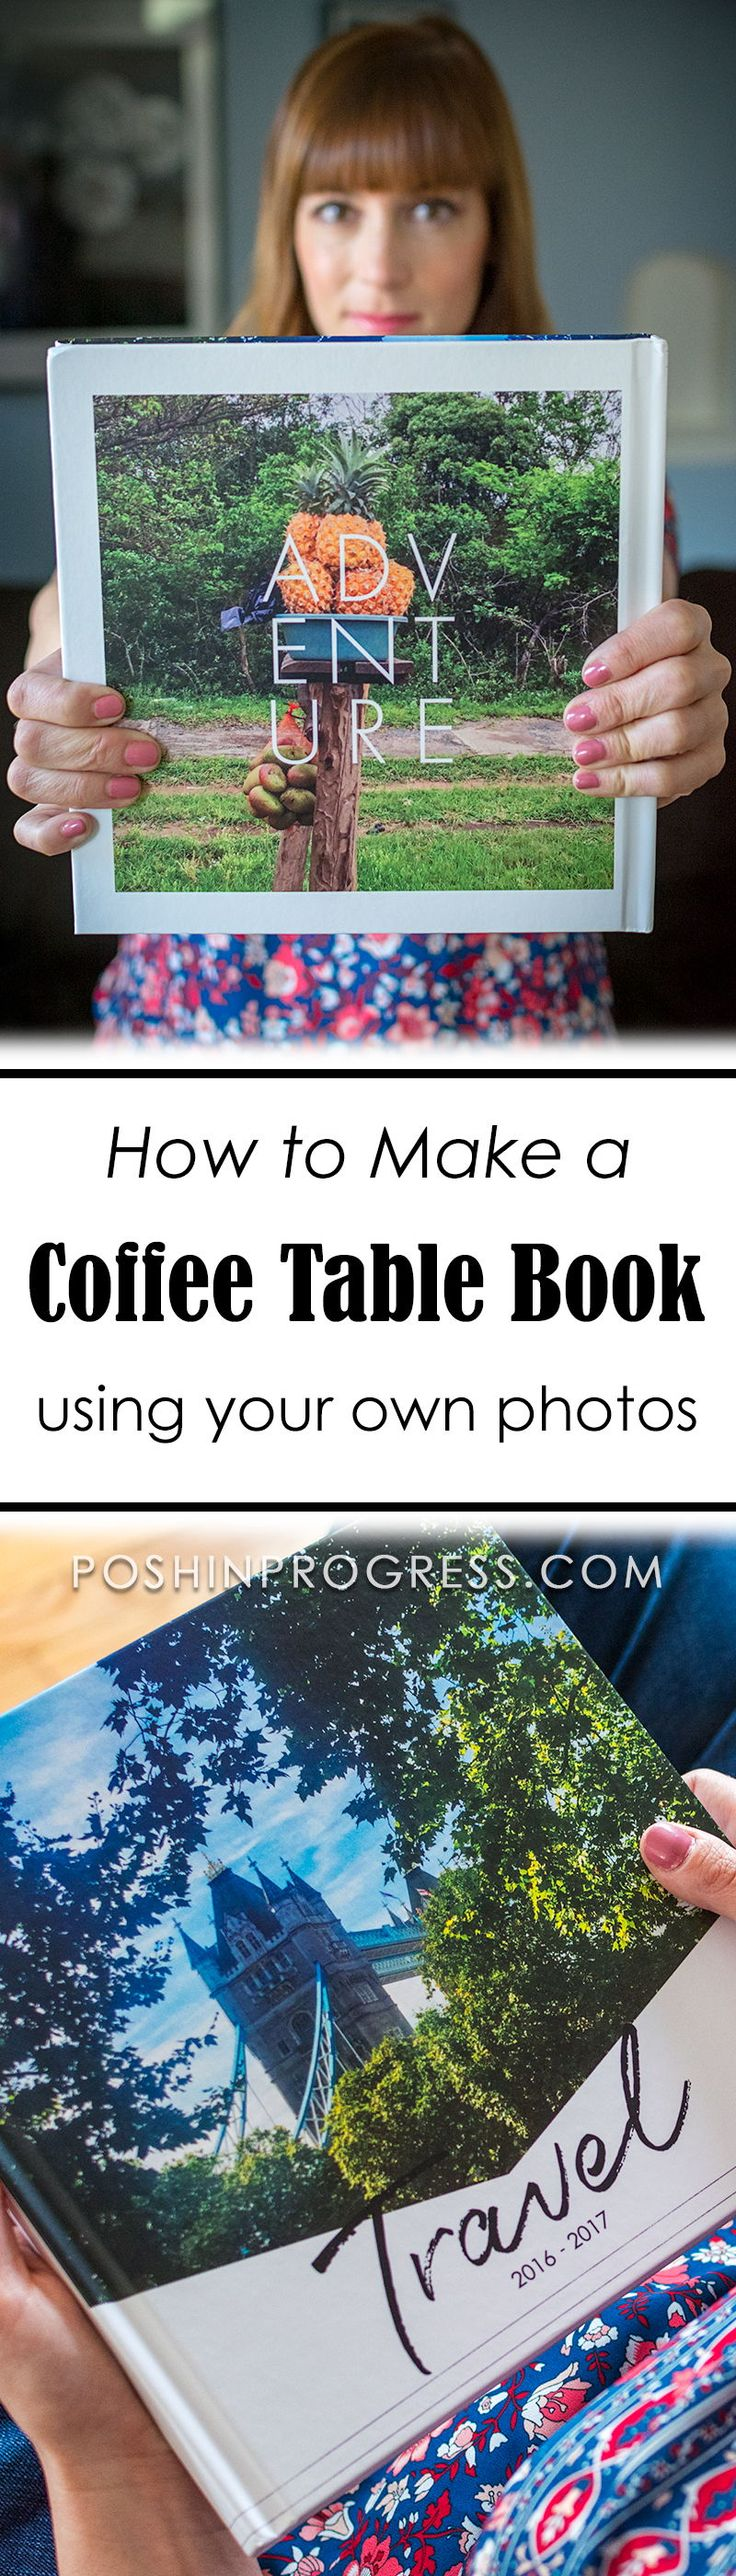 Do you miss printed photos? I love that we have cameras on us all the time, but I personally miss being able to touch and feel my photos. New on the blog, I'm sharing how I created my own coffee table book using some of my favorite travel photos. Wanna make your own? You can save 50% off your first @mixbook using code POSH50 #mixbook #travel #tmom #travelphotos #coffeetable #printing #traveltips